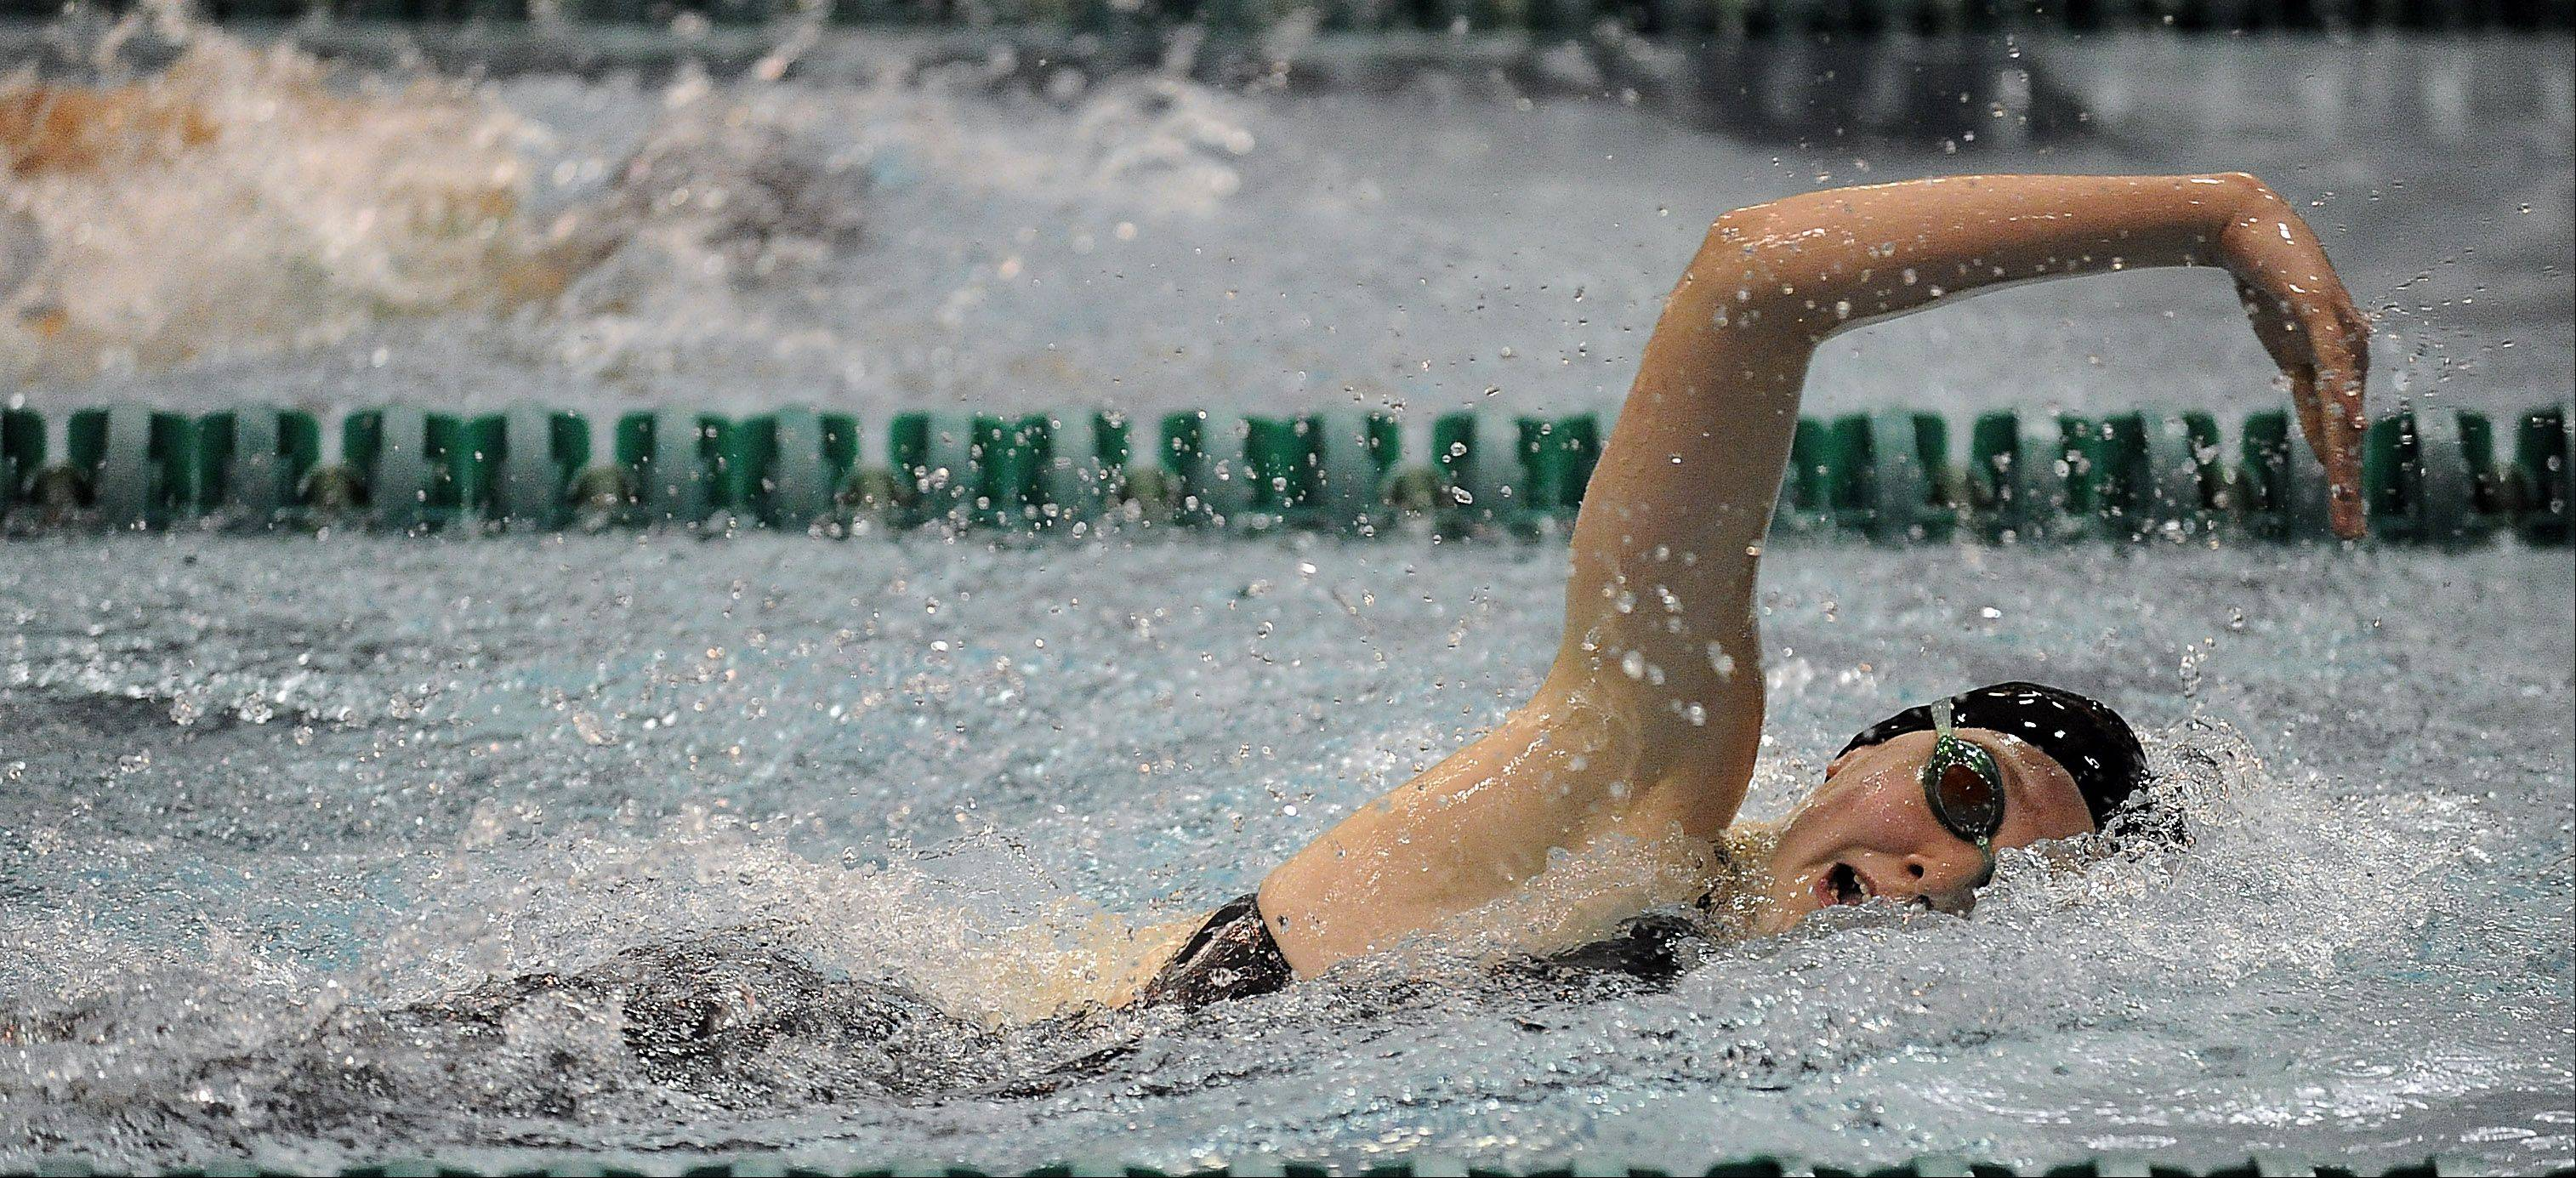 Barrington's Kirsten Jacobsen competes in the 200-yardd freestyle at the girls swimming state meet prelims at New Trier High School on Friday.